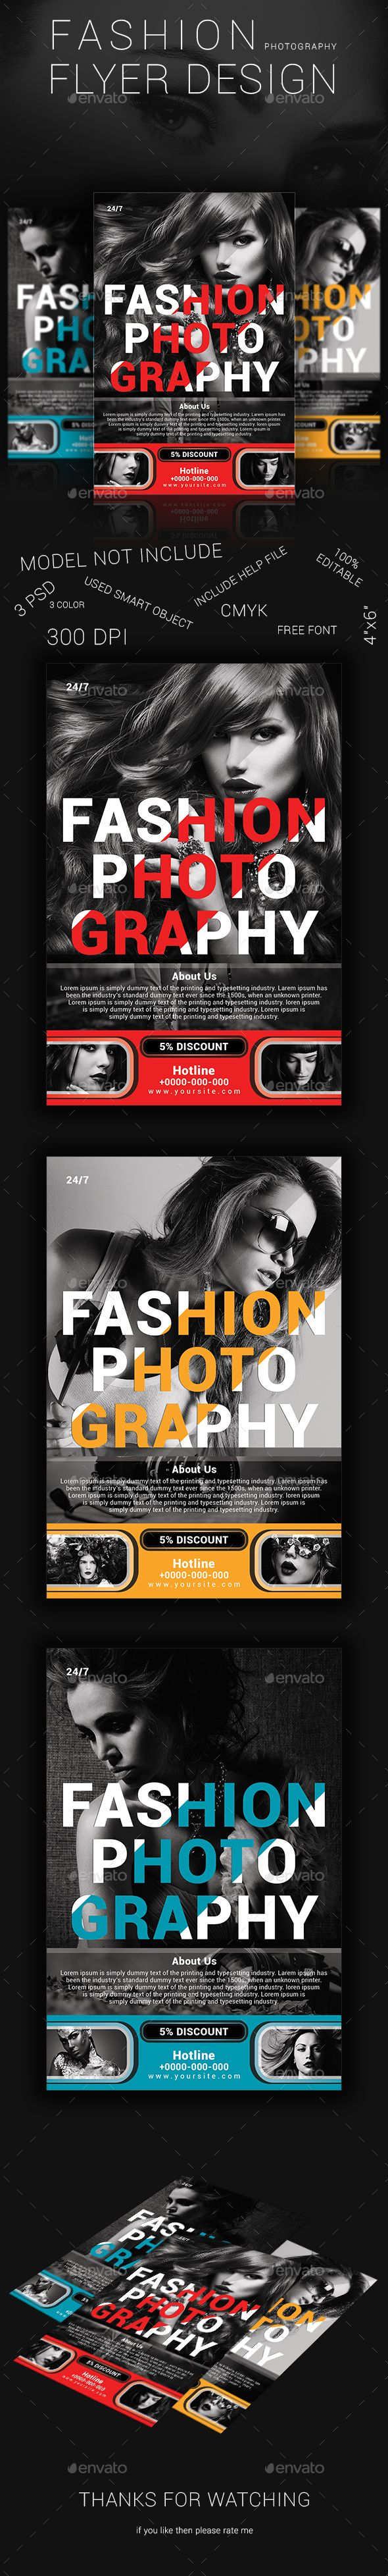 Fashion Photography Flyer Design  Photography Flyer Graphics And